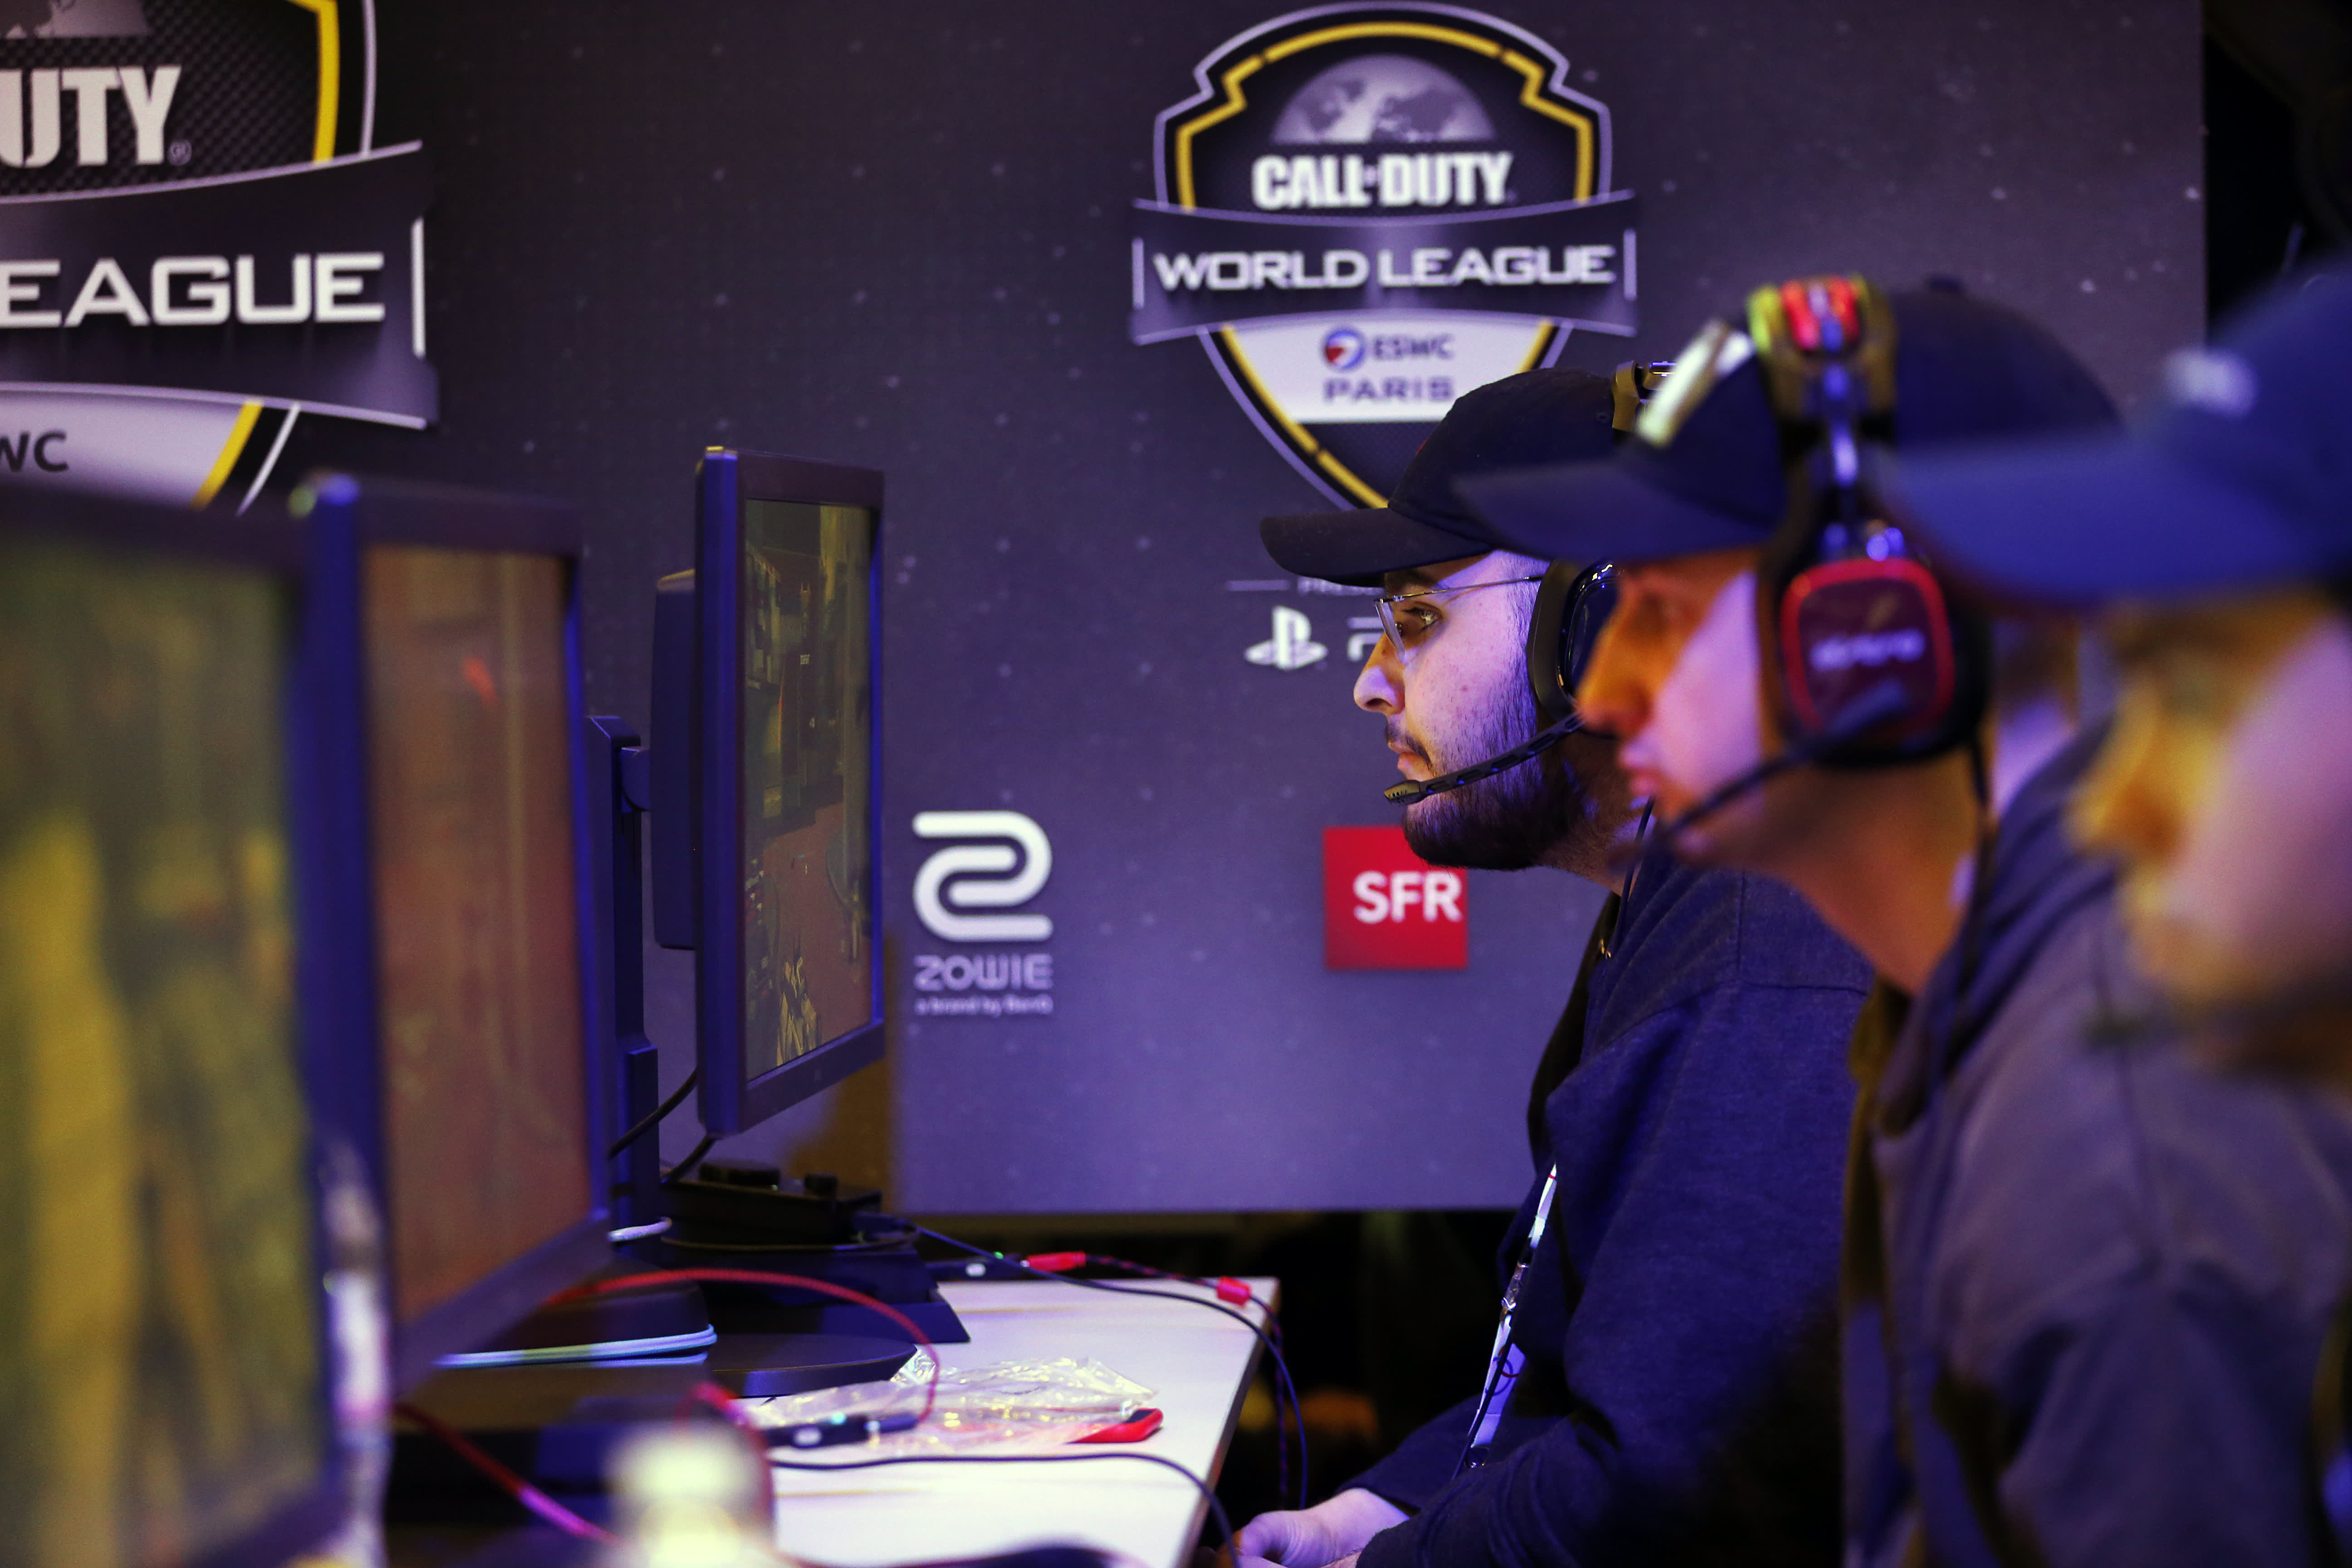 This NFL giant just got into esports, and here's what the tipping point was thumbnail